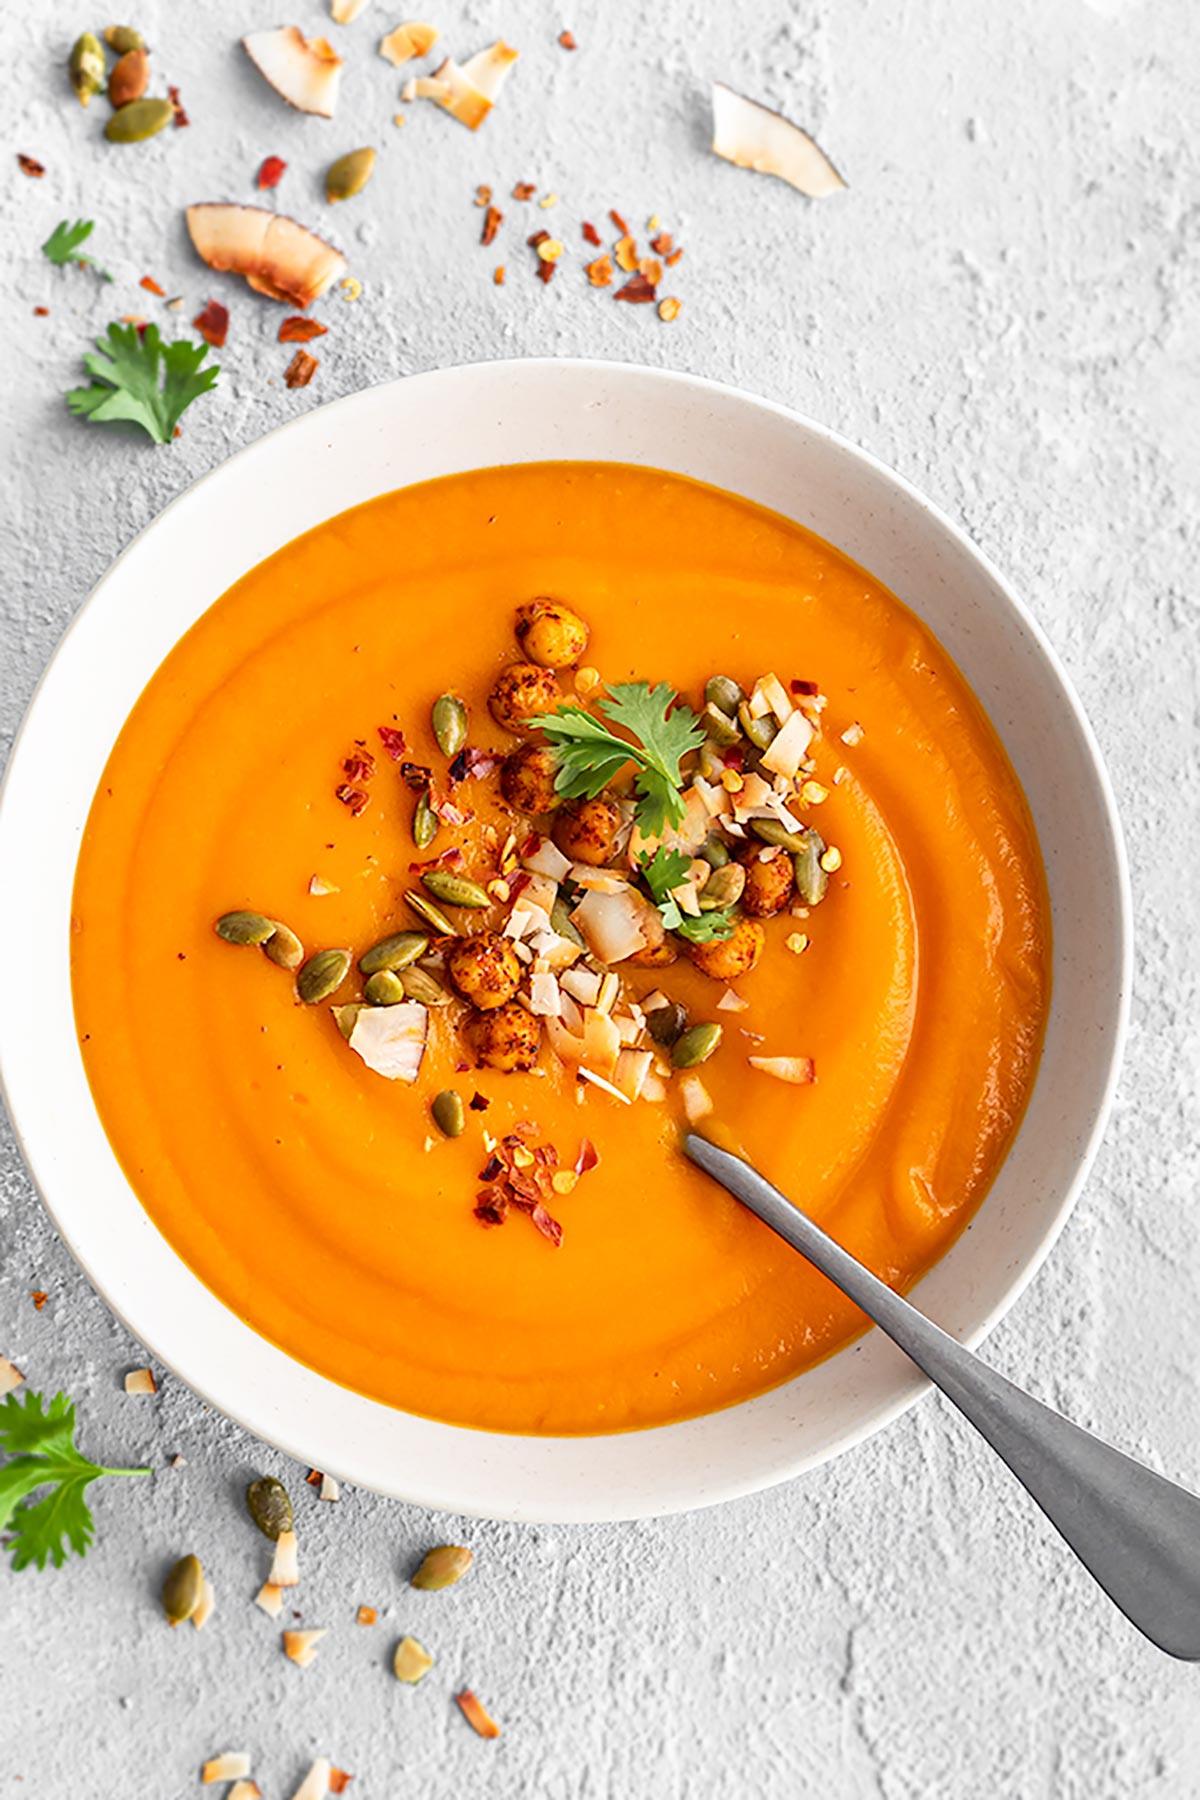 Bowl of sweet potato soup garnished with roasted chickpeas, toasted coconut flakes, roasted pumpkin seeds, red pepper flakes, and cilantro.  Top view